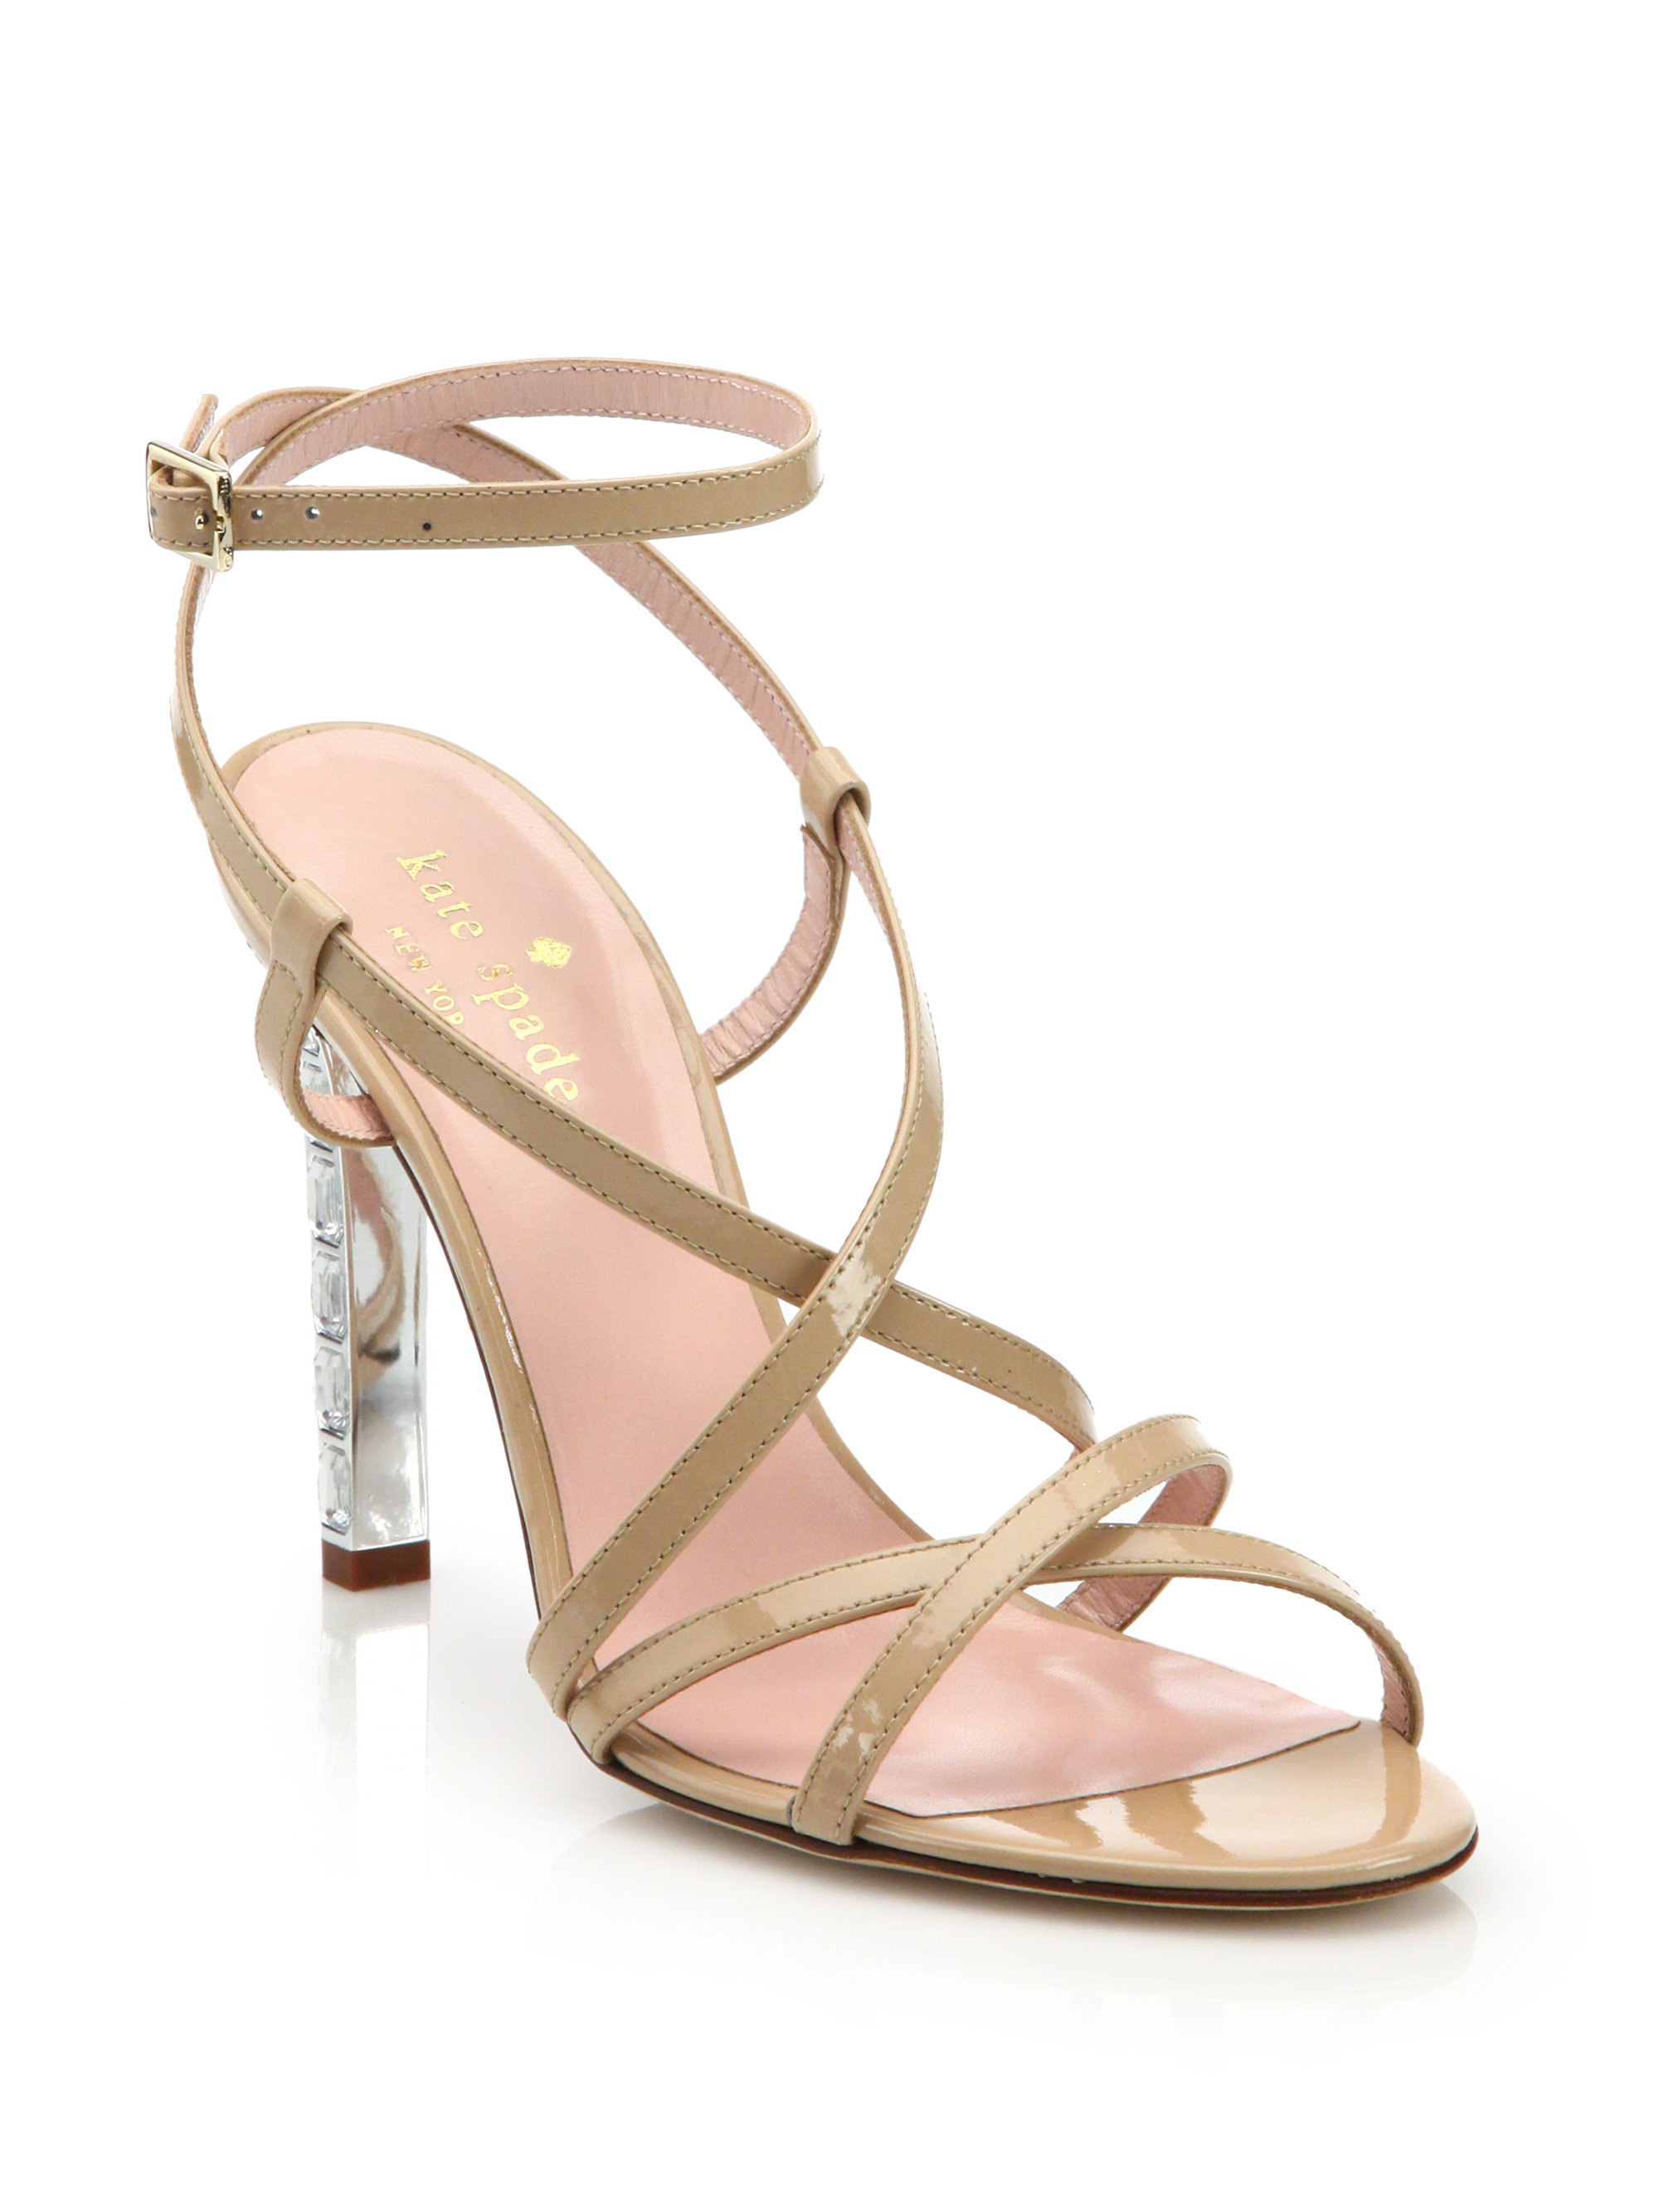 Kate Spade New York Patent Leather Multi-Strap Sandals outlet 2014 hwrXm13q